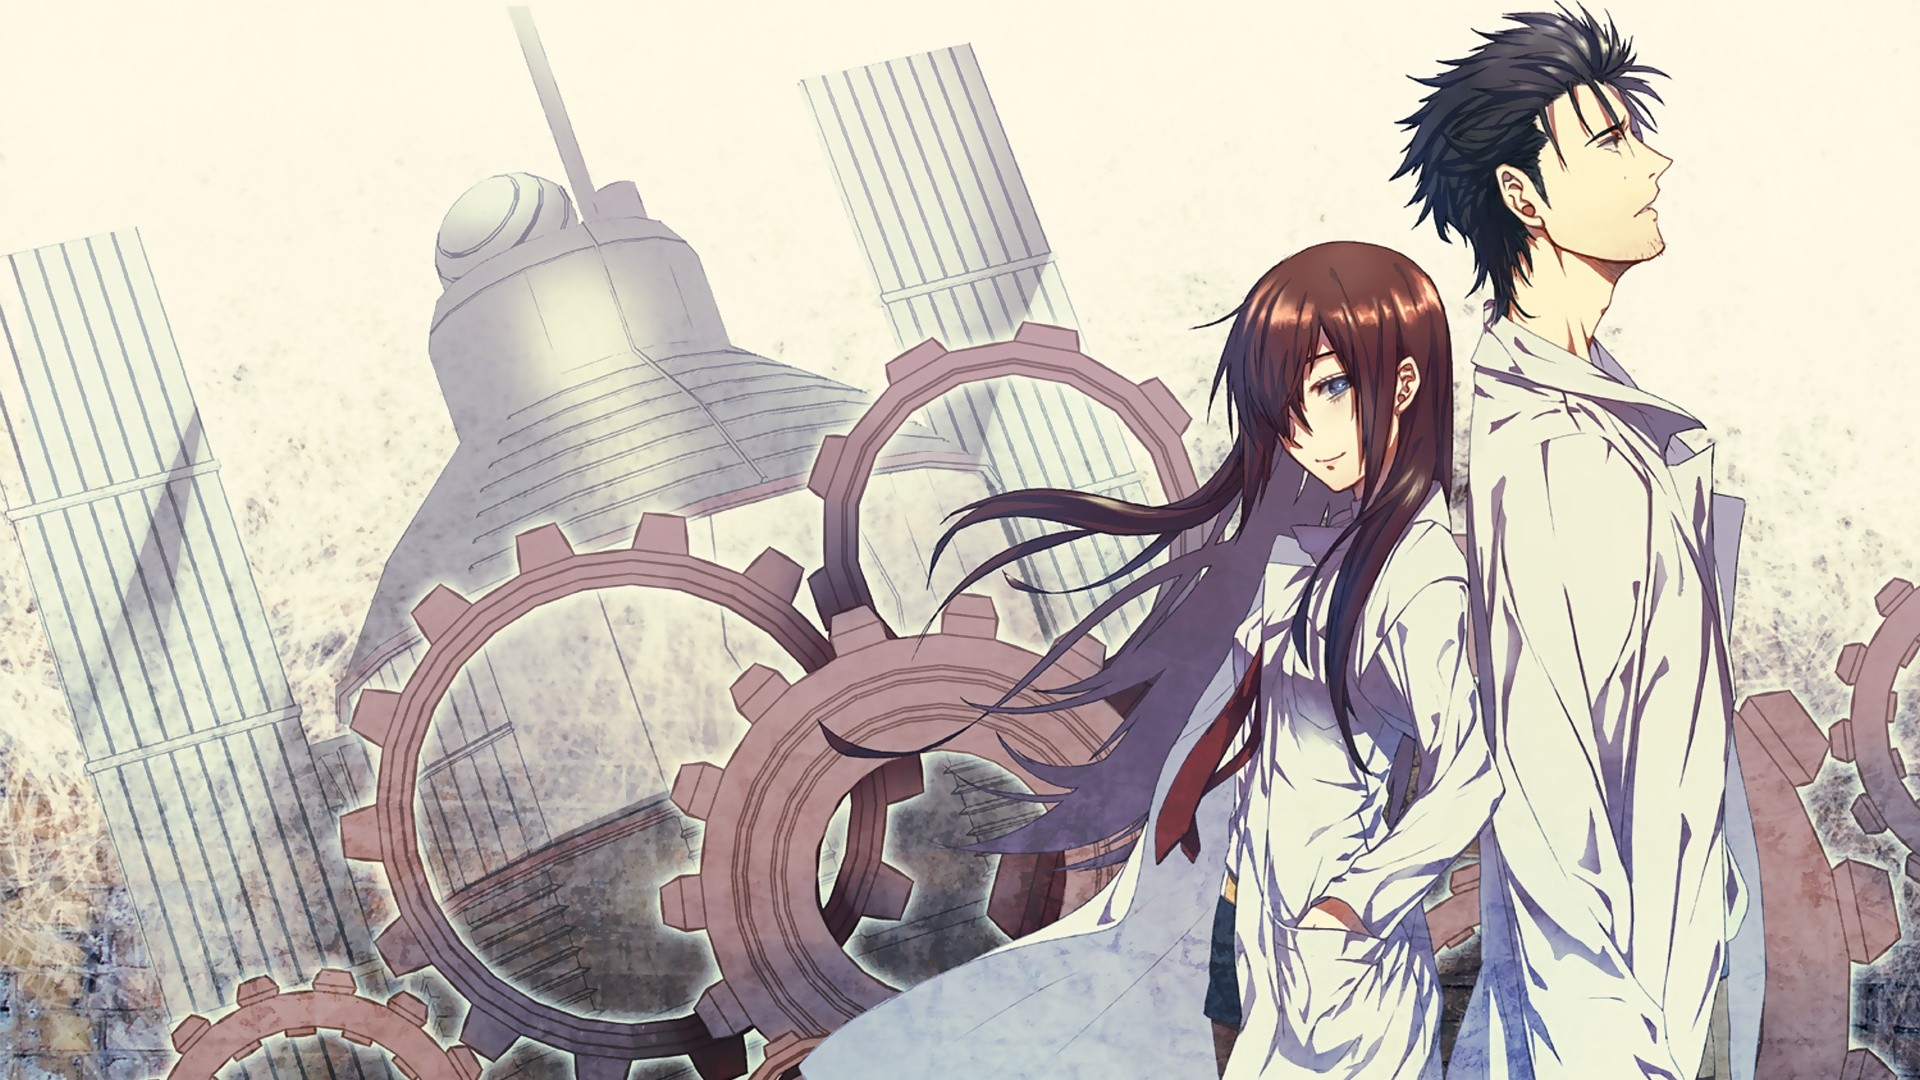 Steins Gate Full HD Wallpaper https://wallpapers-and-backgrounds.net